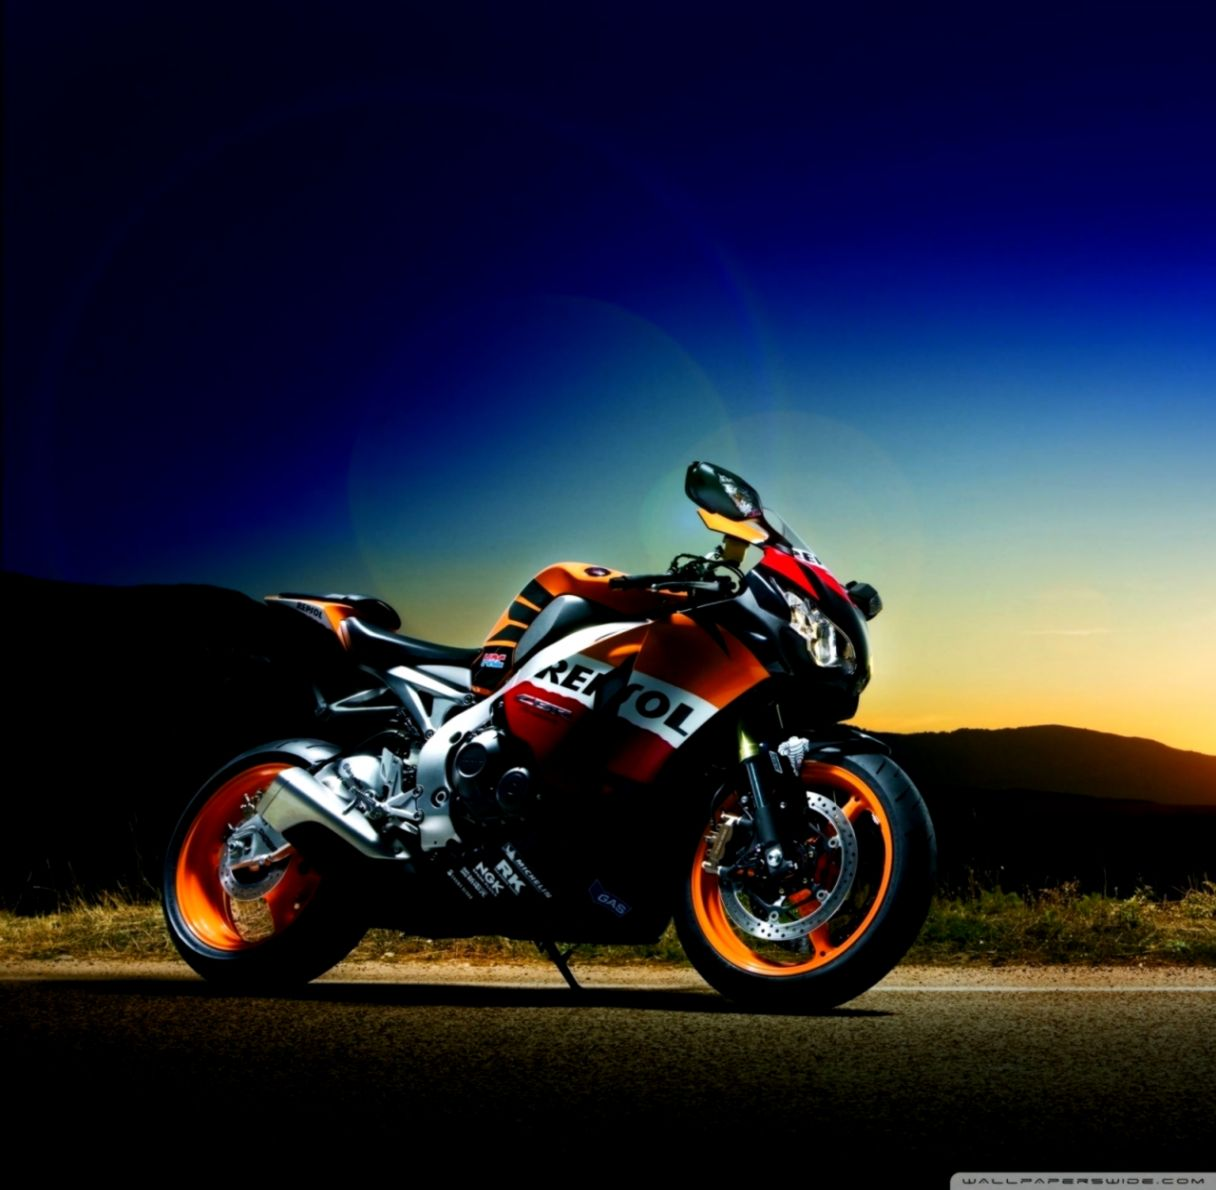 Honda Cbr Rapsol Motorcycle Wallpapers Hd And Backgrounds